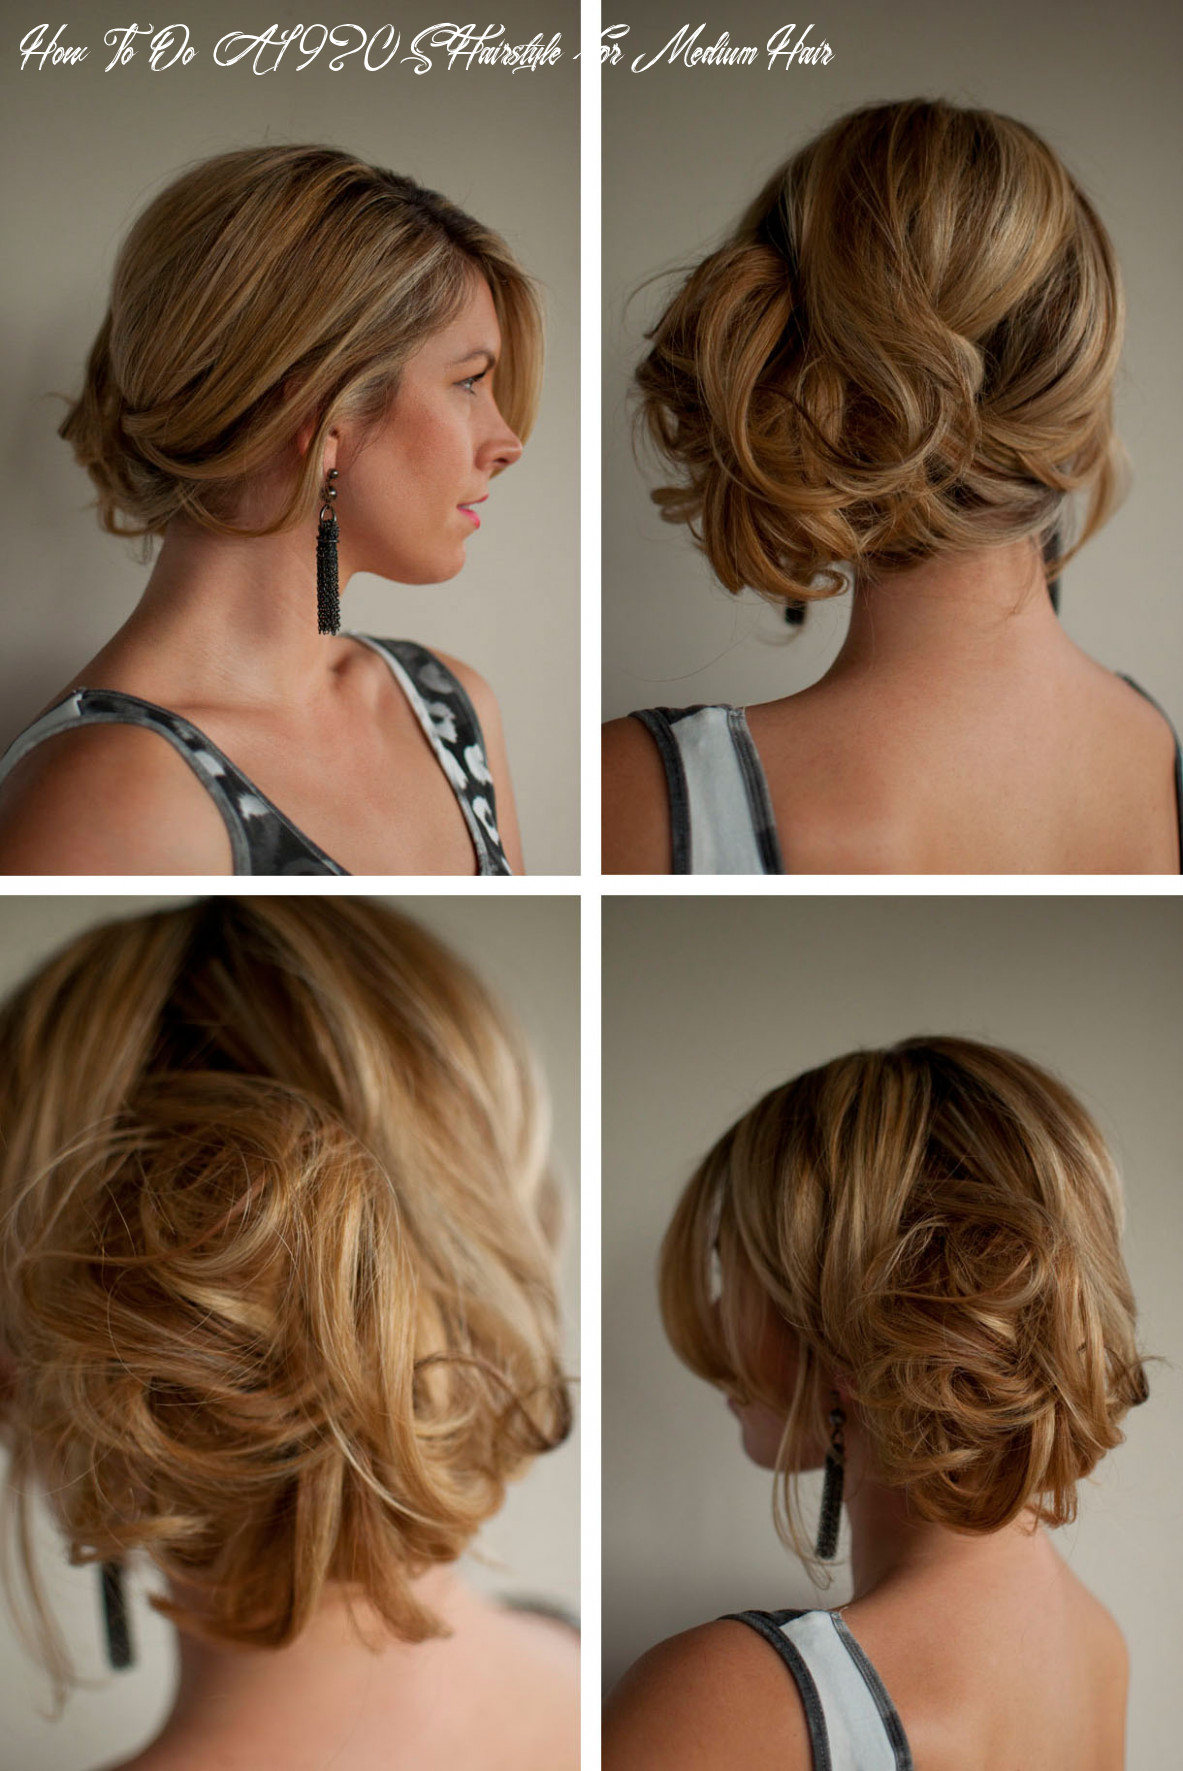 Hair romance reader question hairstyles for a 12s themed